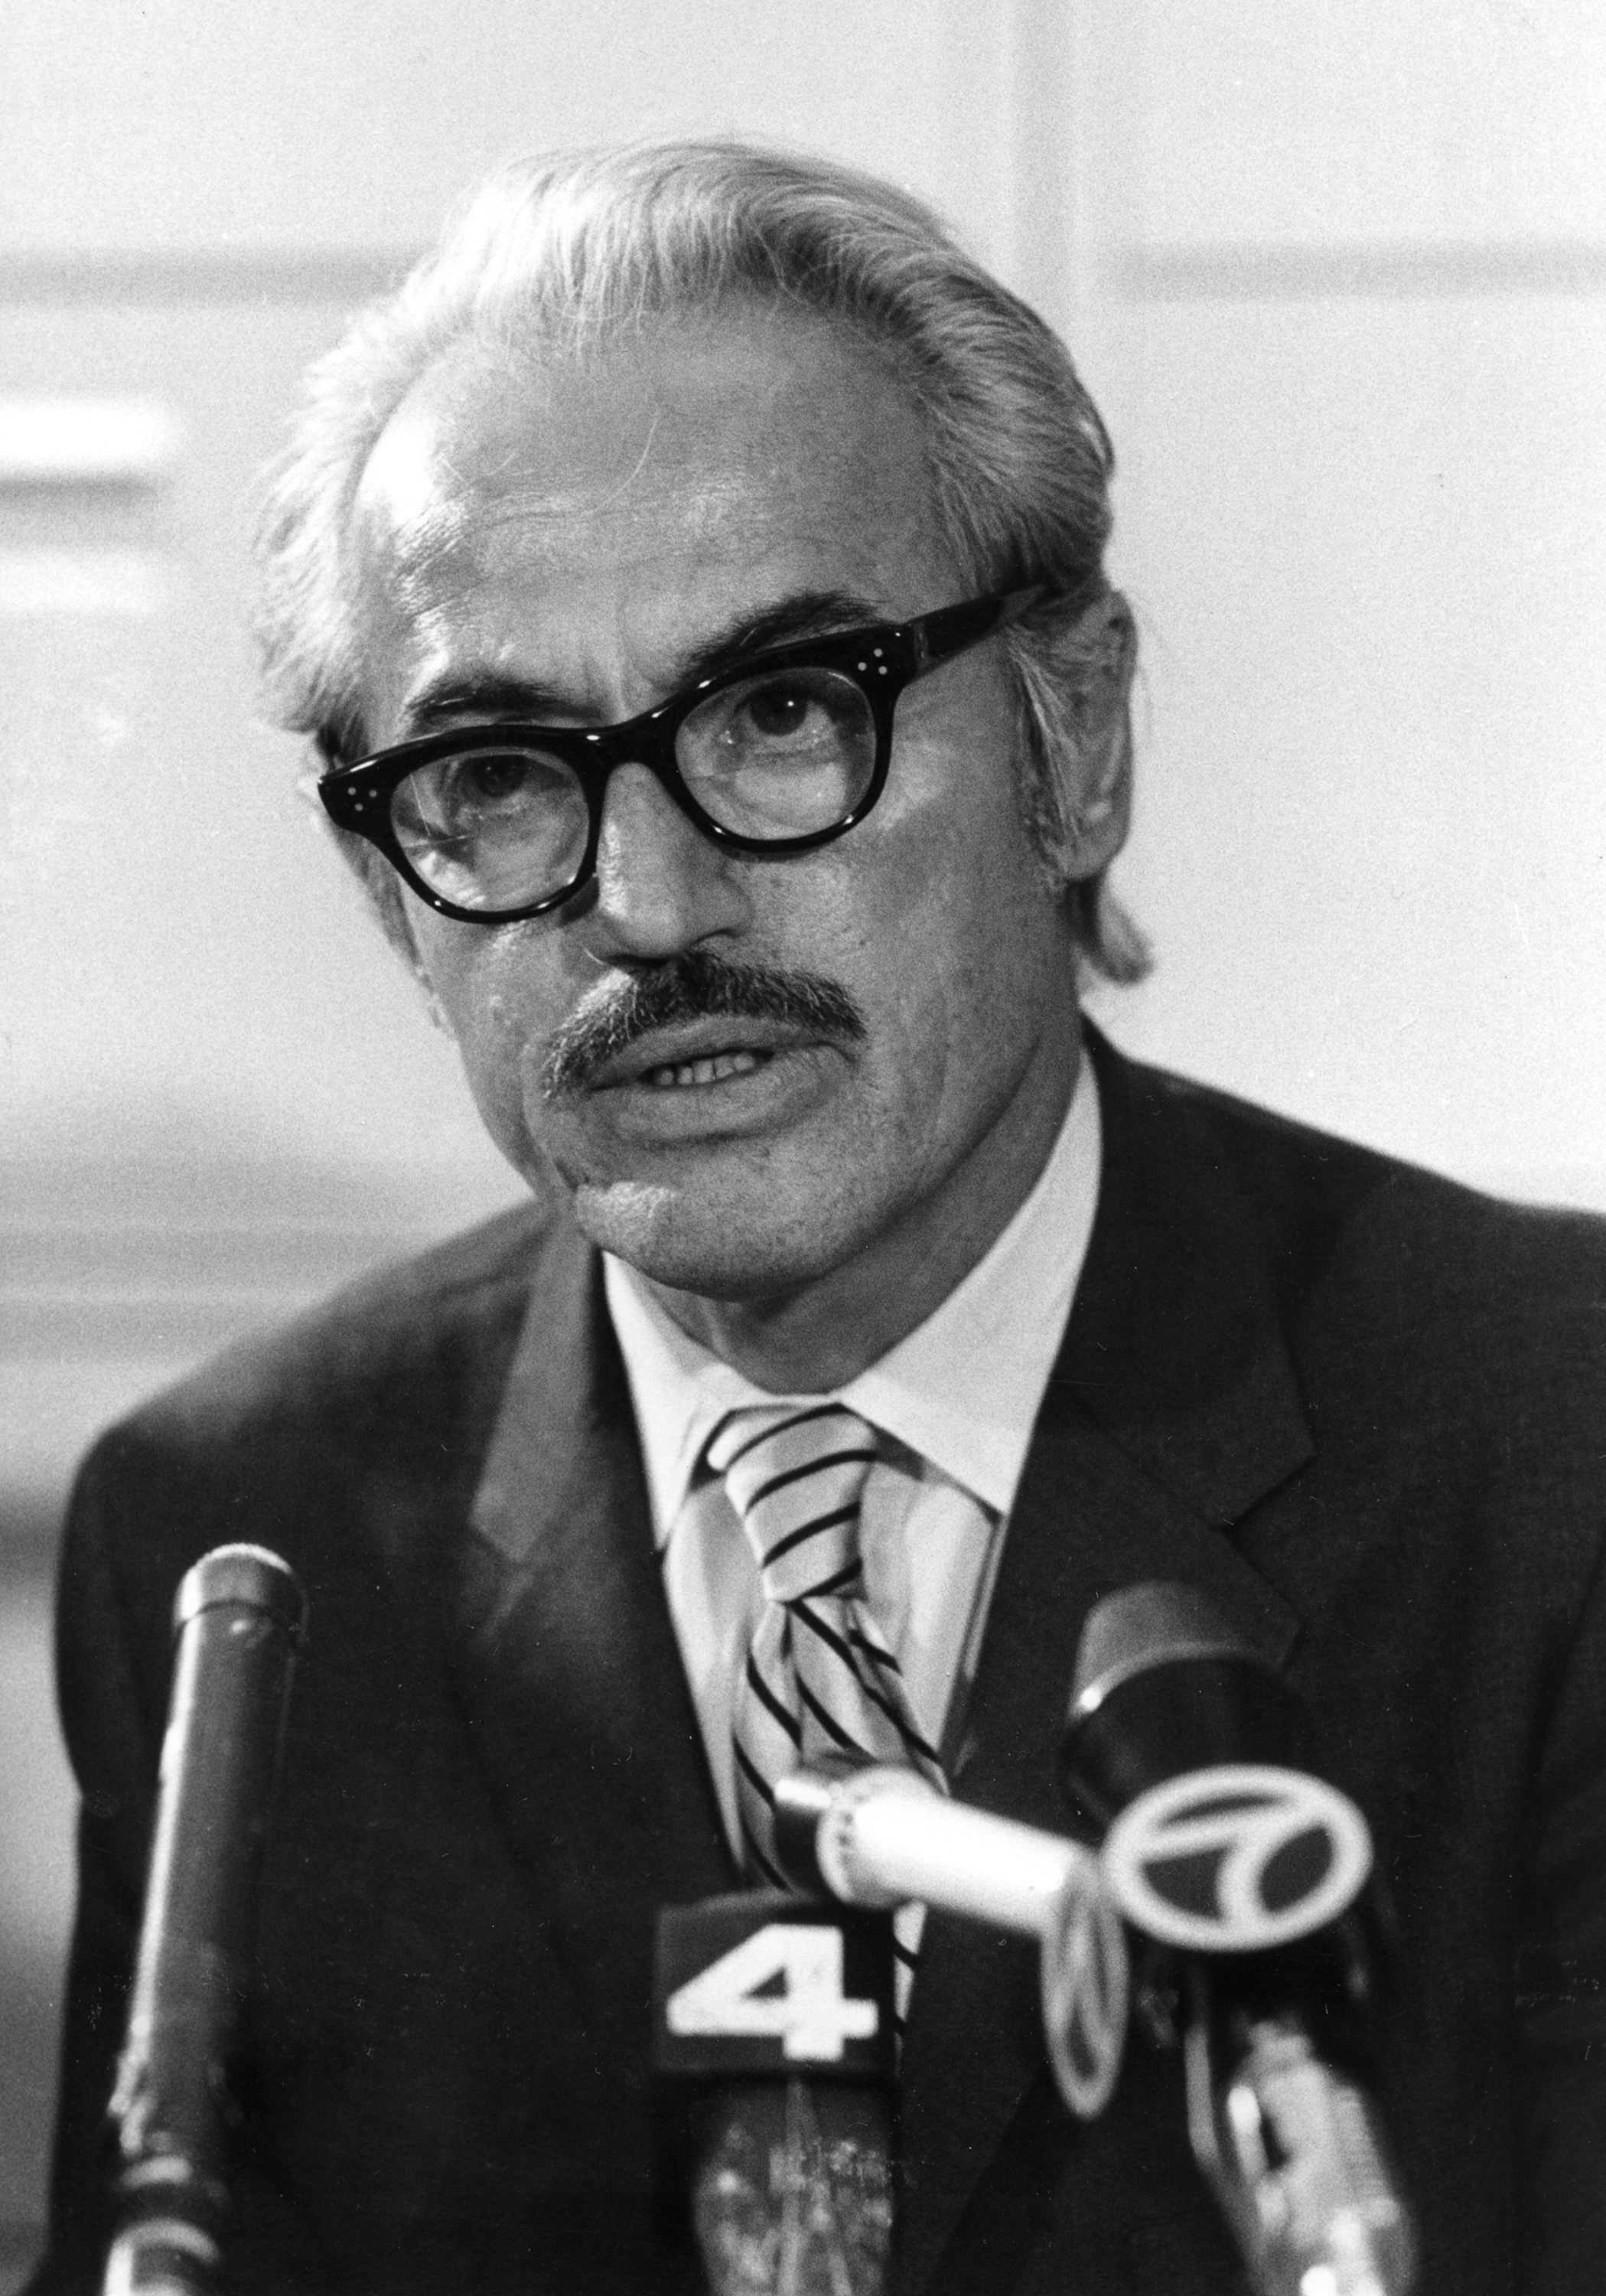 Marvin Miller, Major League Baseball's first players' union boss, died Tuesday at age 95. (AP)